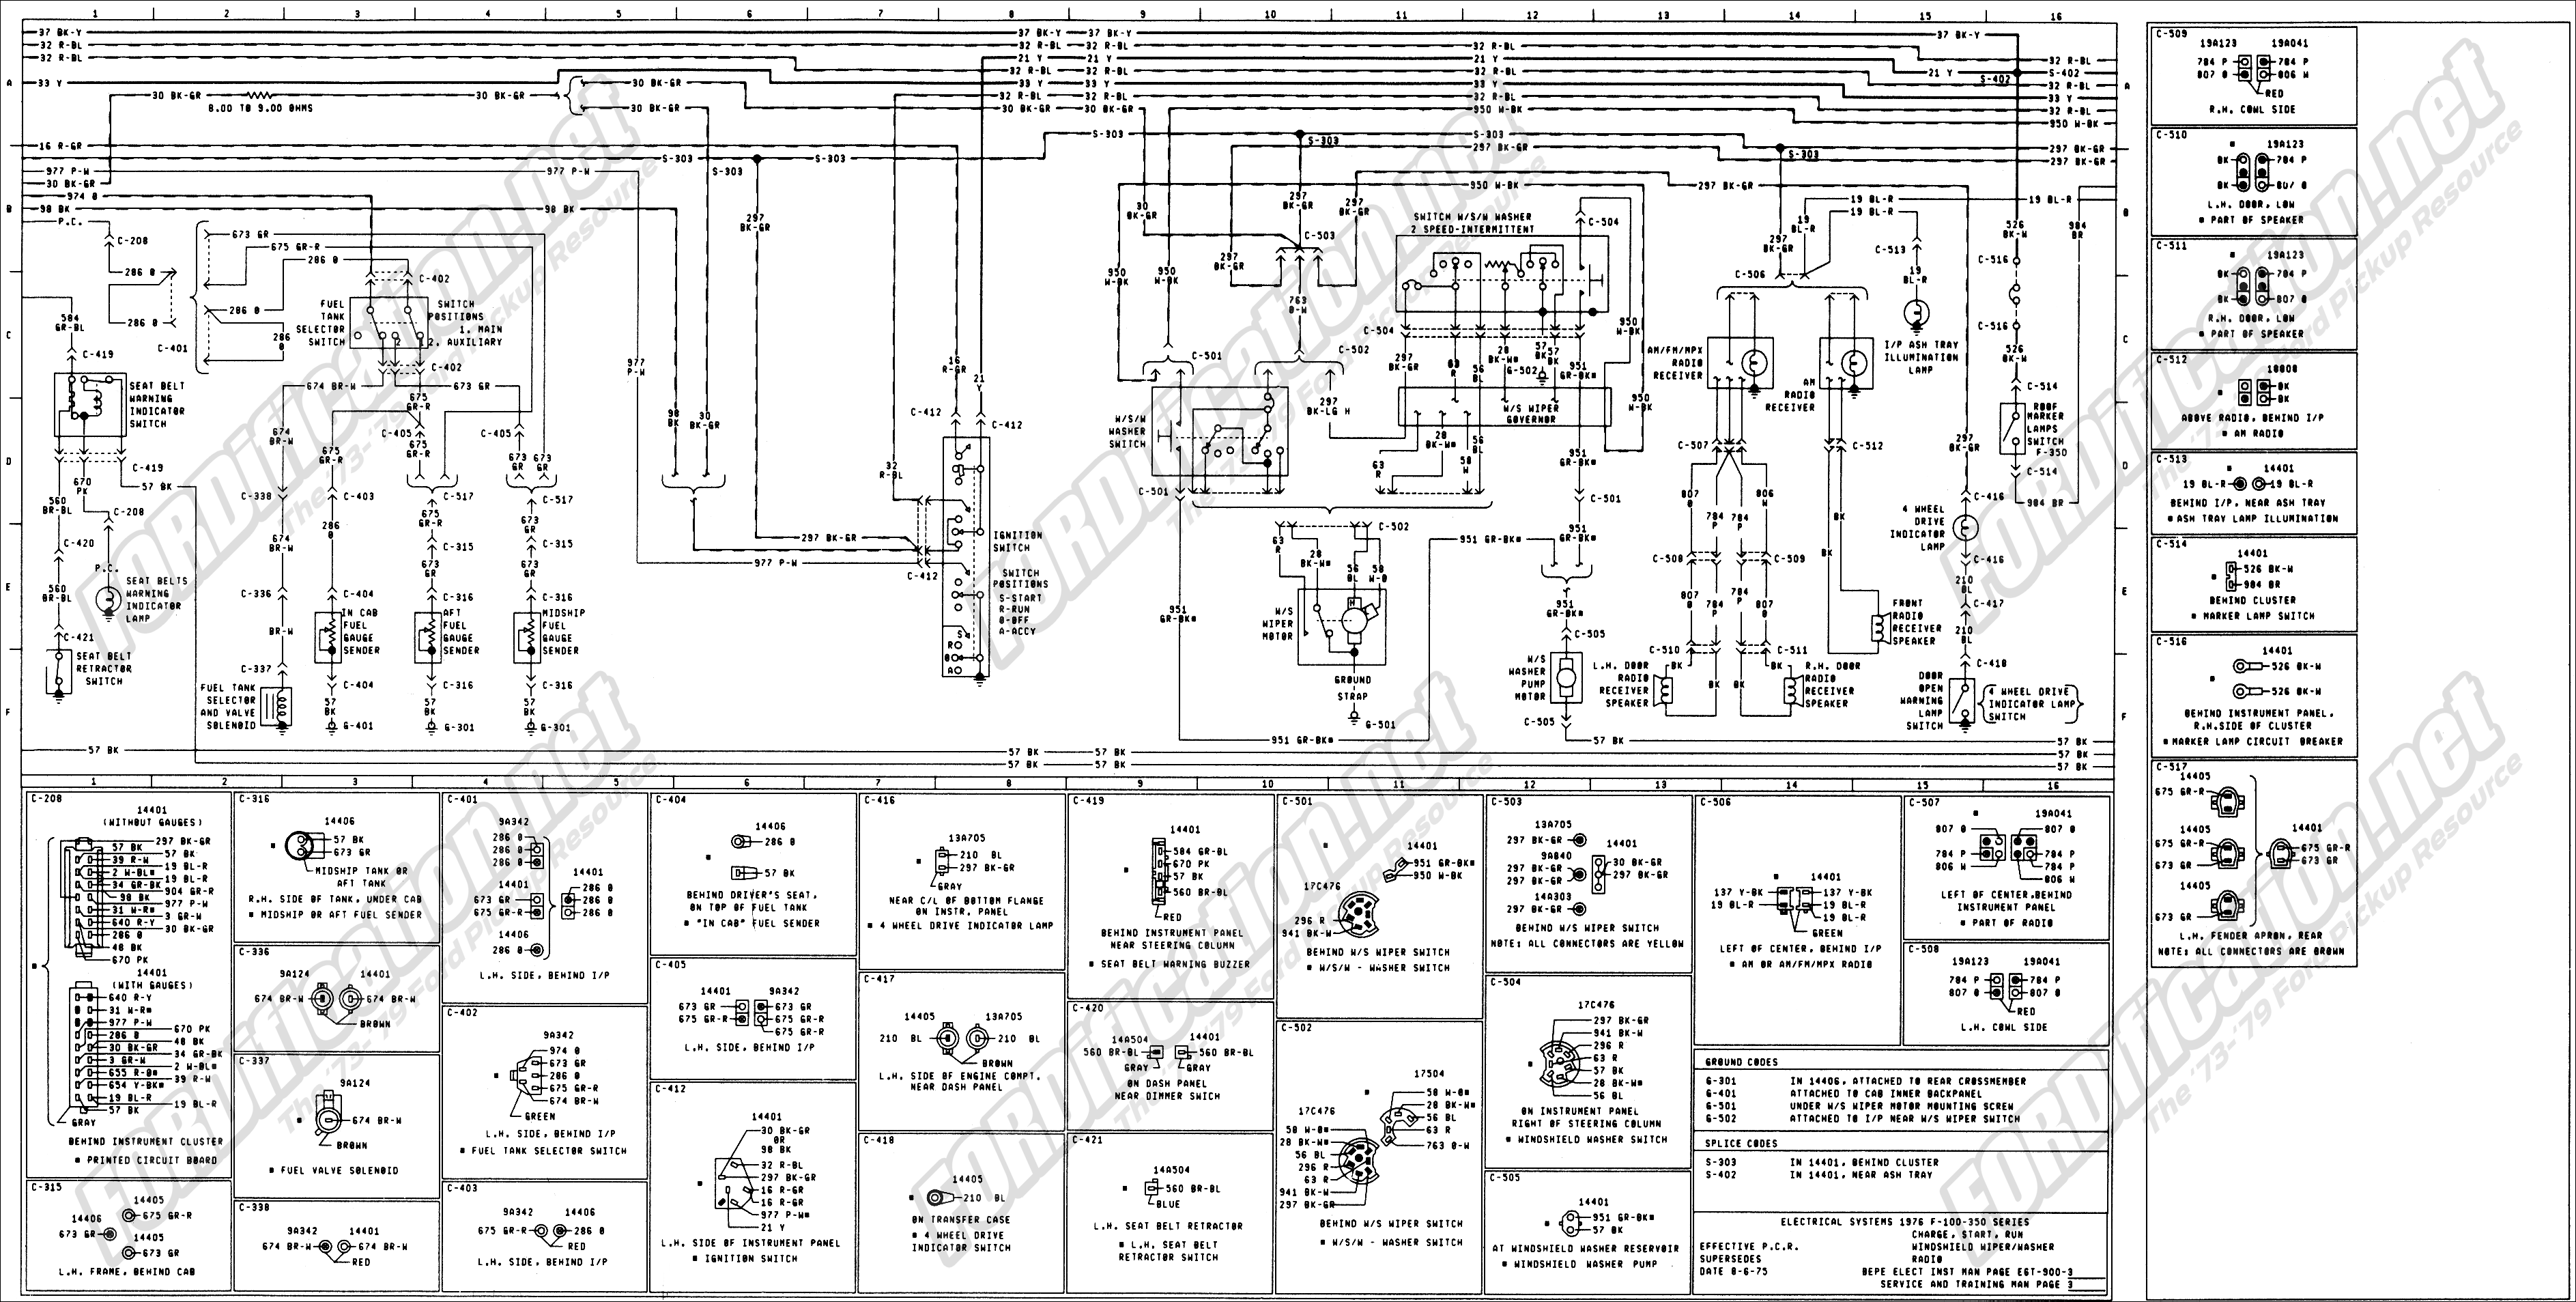 2004 Crown Vic Fuse Box Diagram Wiring Library F250 1973 1979 Ford Truck Diagrams Schematics 1999 Expedition Victoria